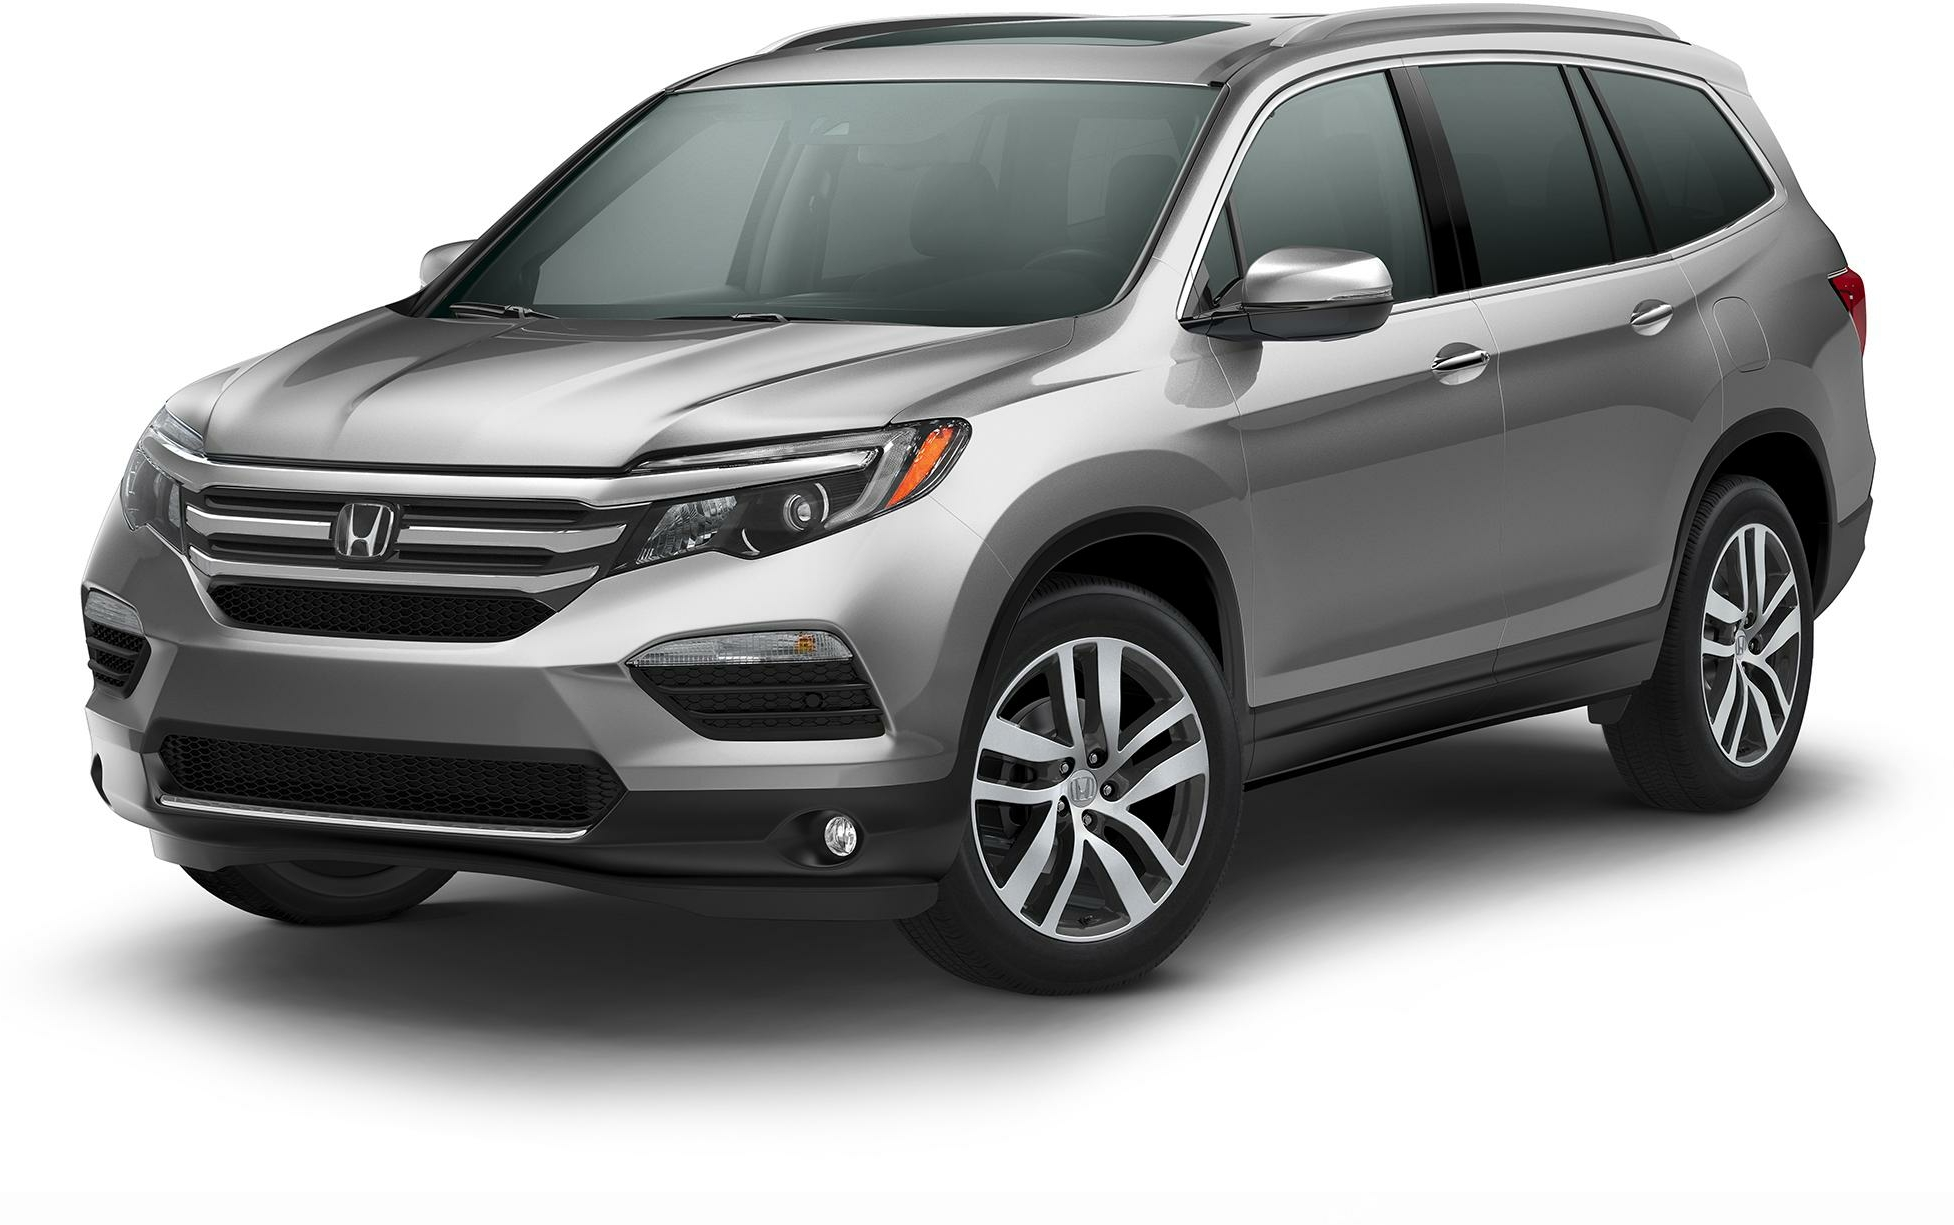 2017 honda pilot touring 2wd rocky mount nc 21668660. Black Bedroom Furniture Sets. Home Design Ideas